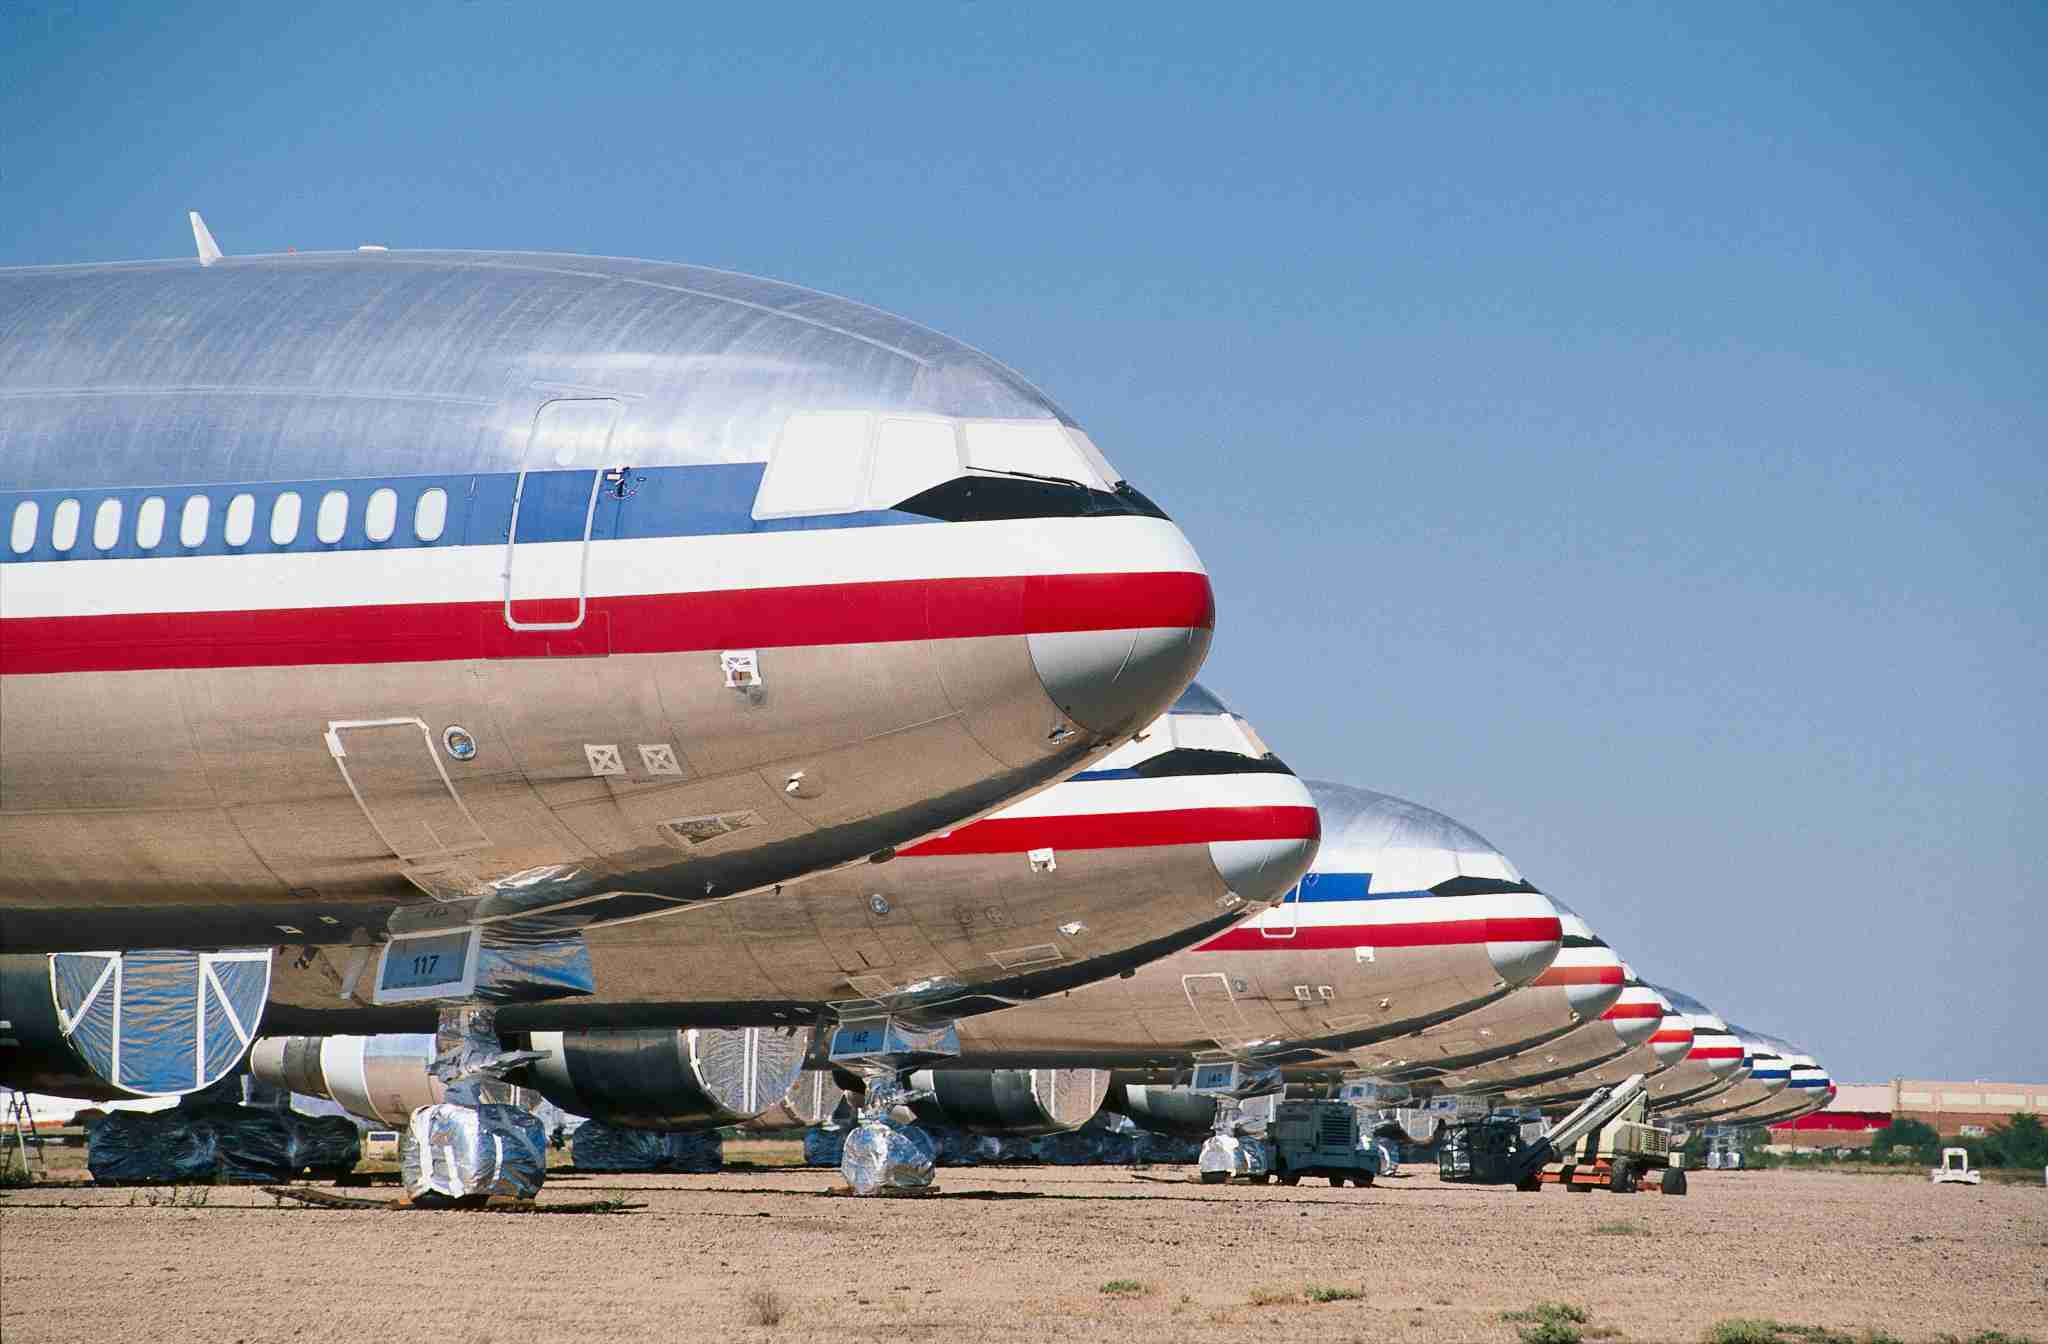 a row of noses of American Airlines McDonnell Douglas DC-10s parked after retirement in to desert-storage, Arizona, USA. (Photo by: aviation-images.com/Universal Images Group via Getty Images)